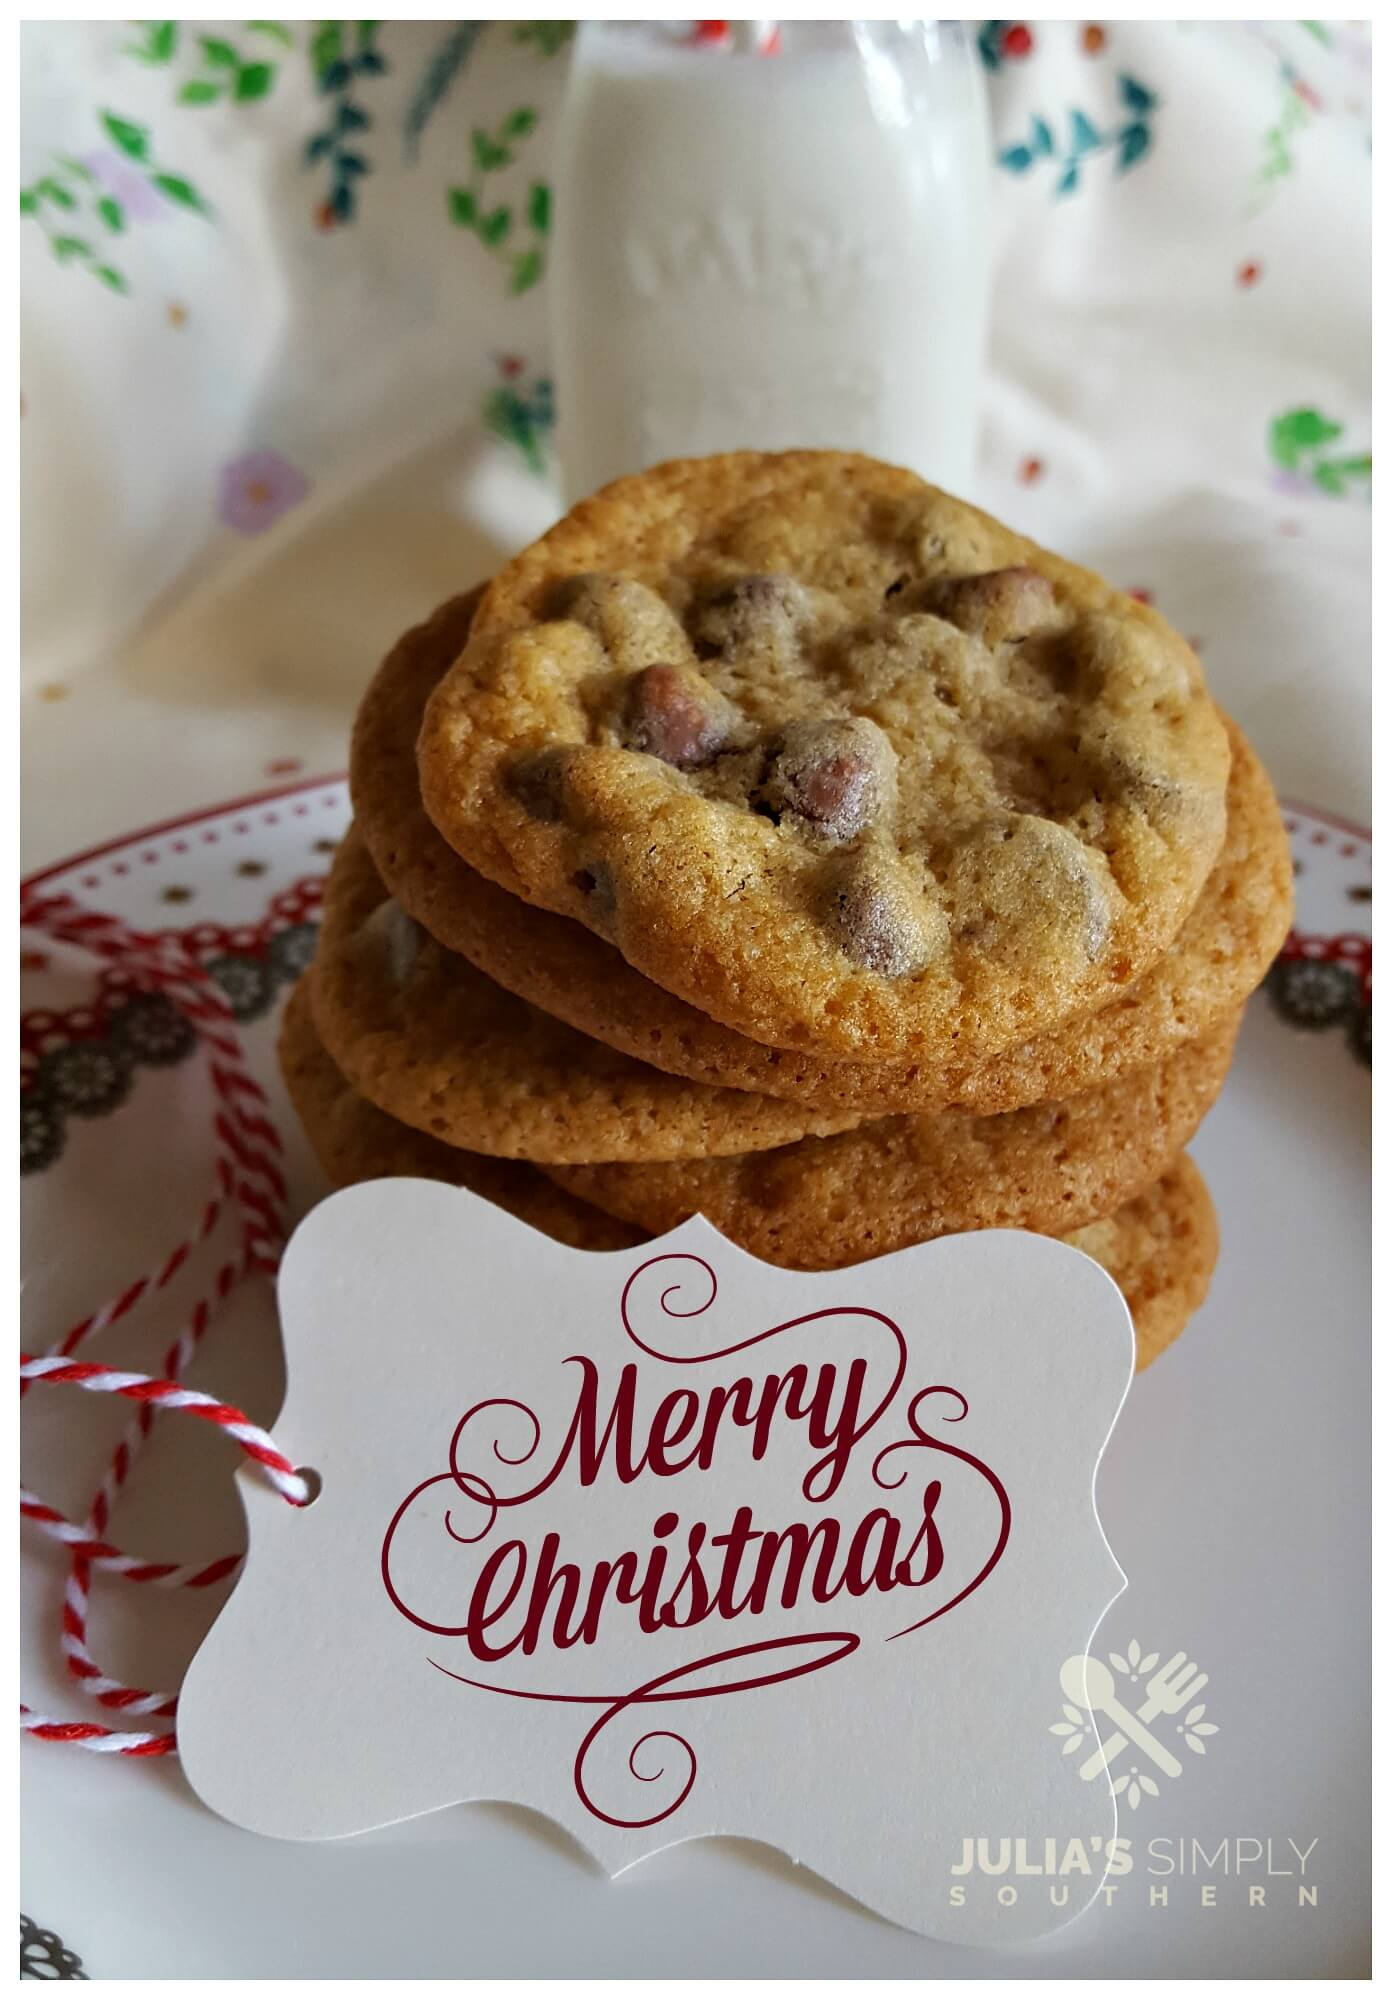 Plate of cookies for Santa - Chocolate Chip